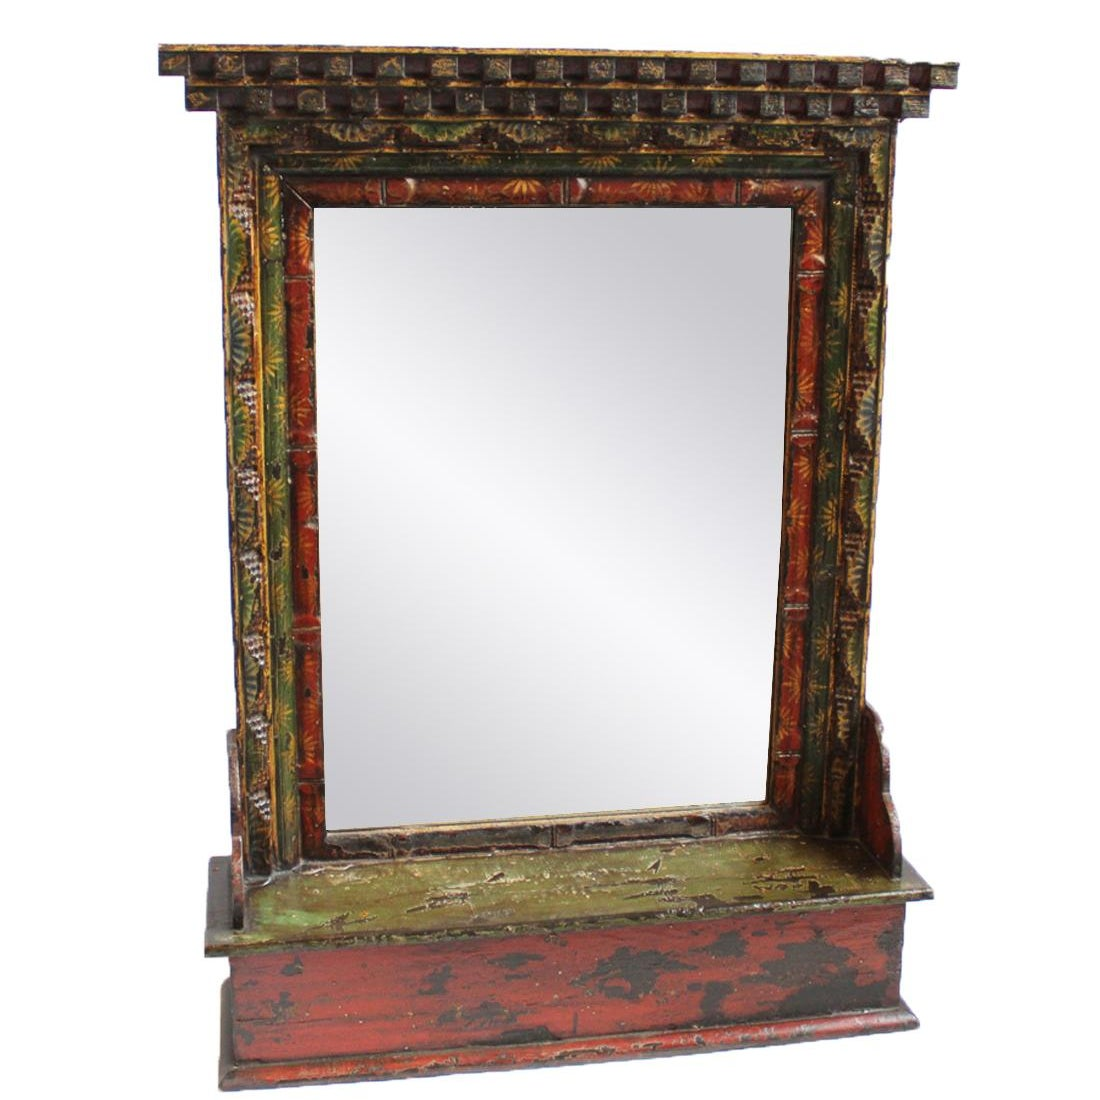 Tibetan Painted Mirror Frame Chairish